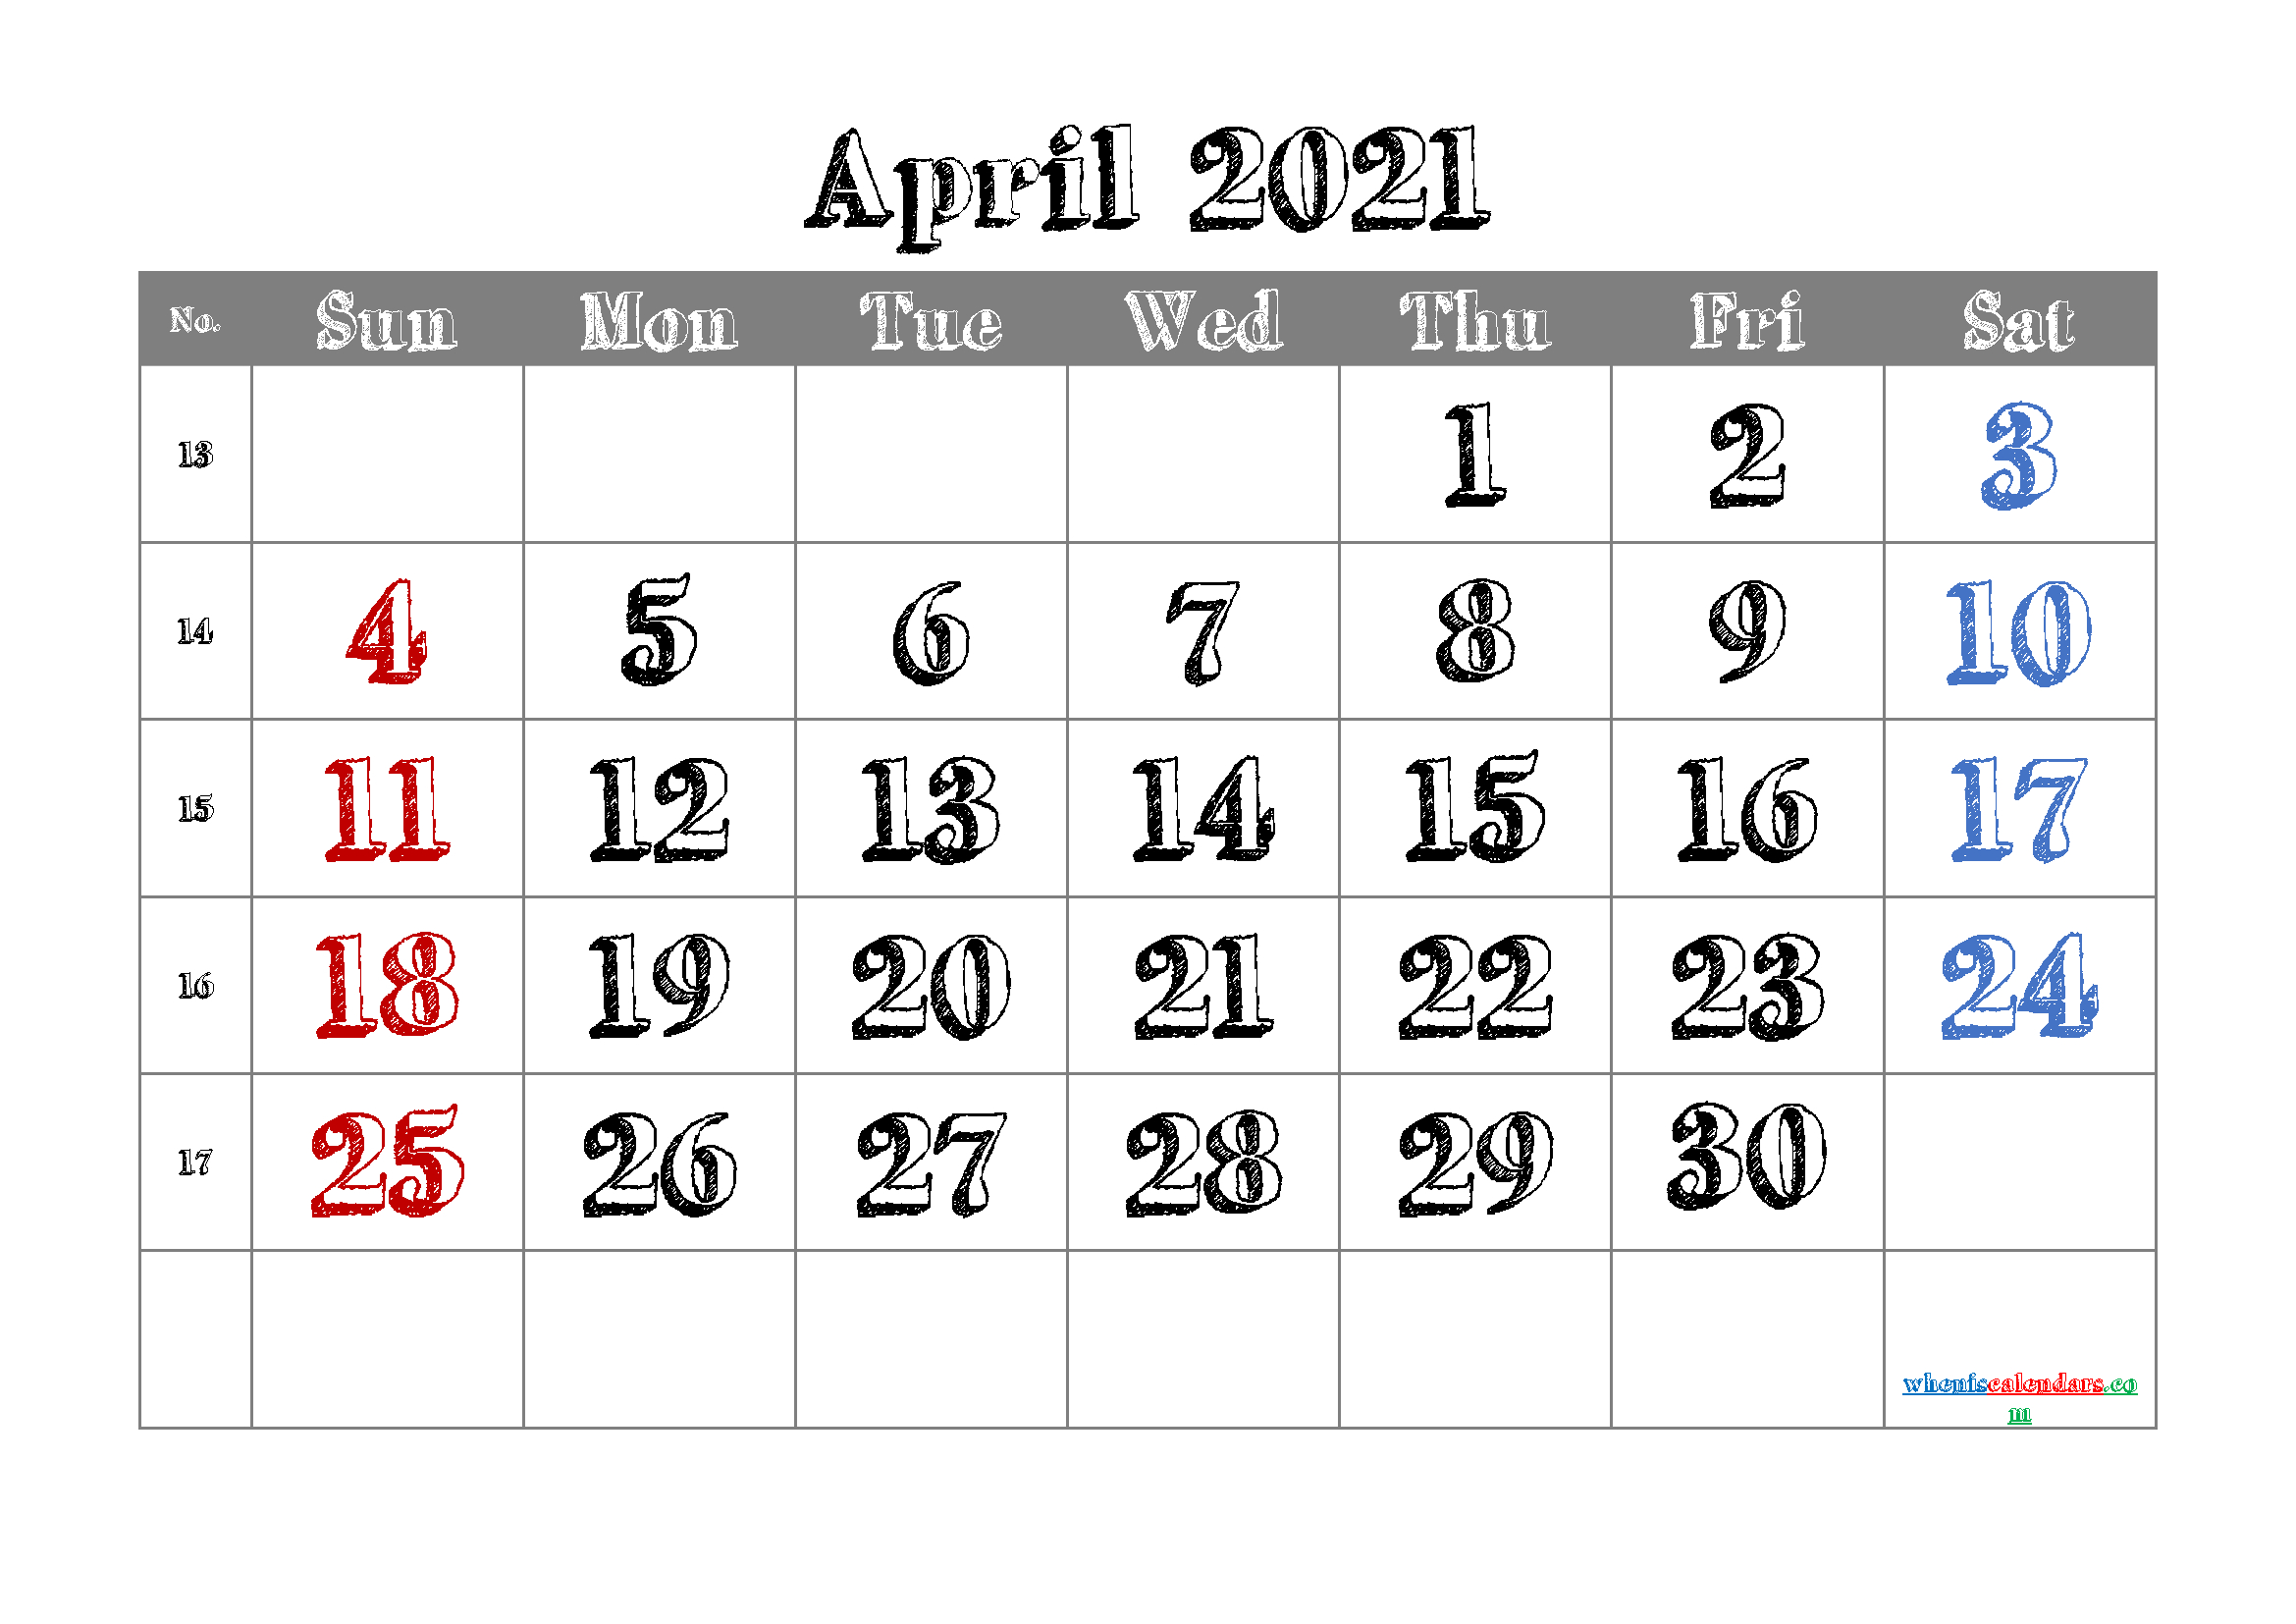 April 2021 Calendar Printable Free | Template